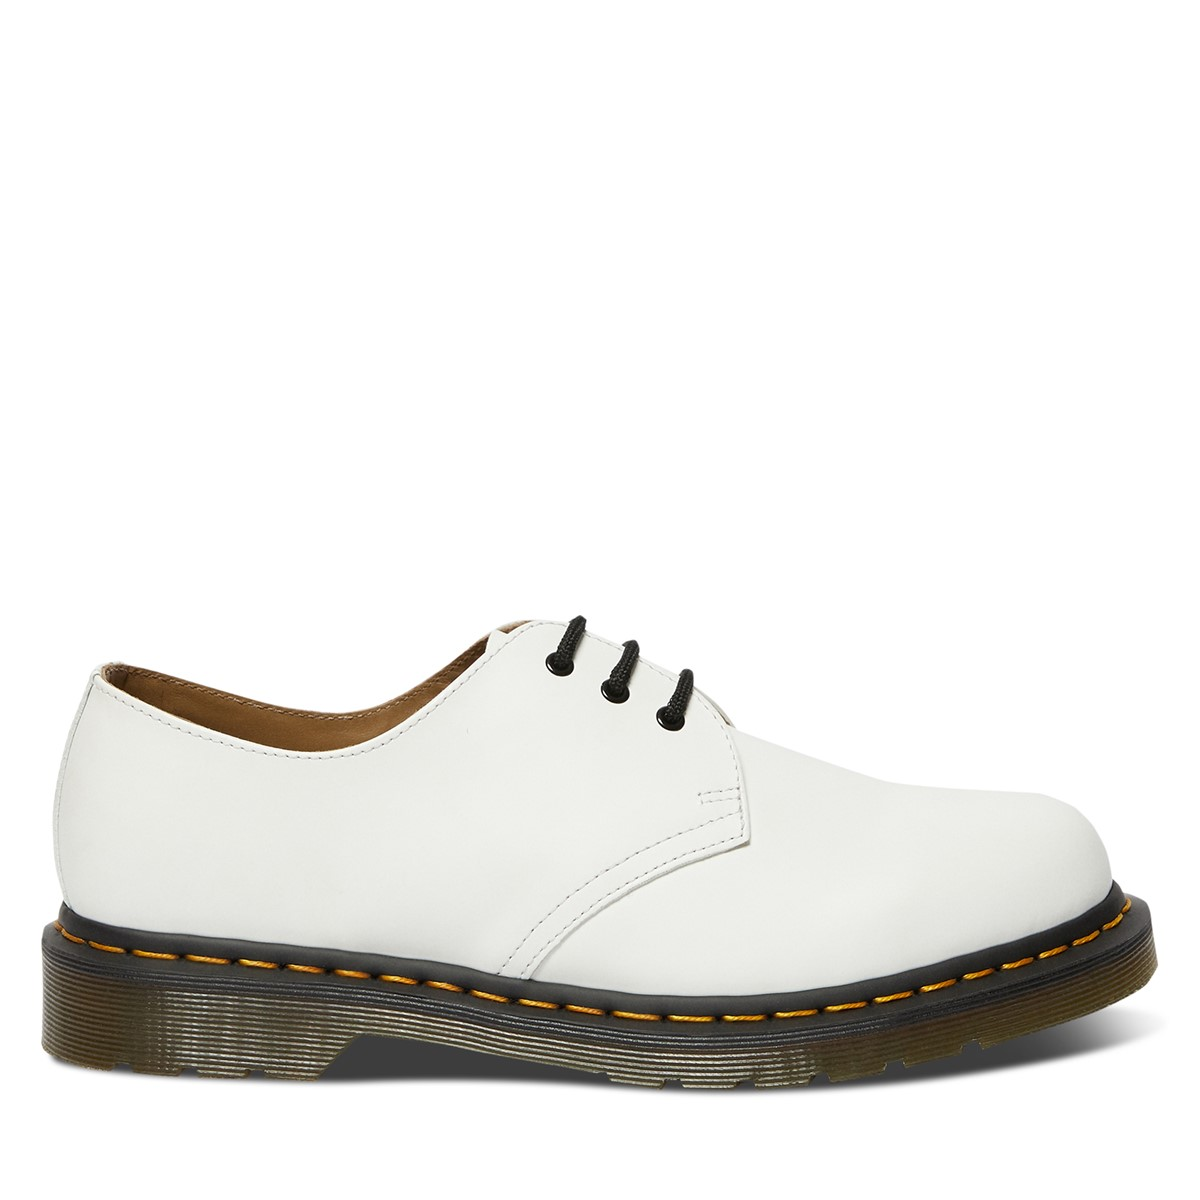 Women's 1461 Oxford Shoes in White